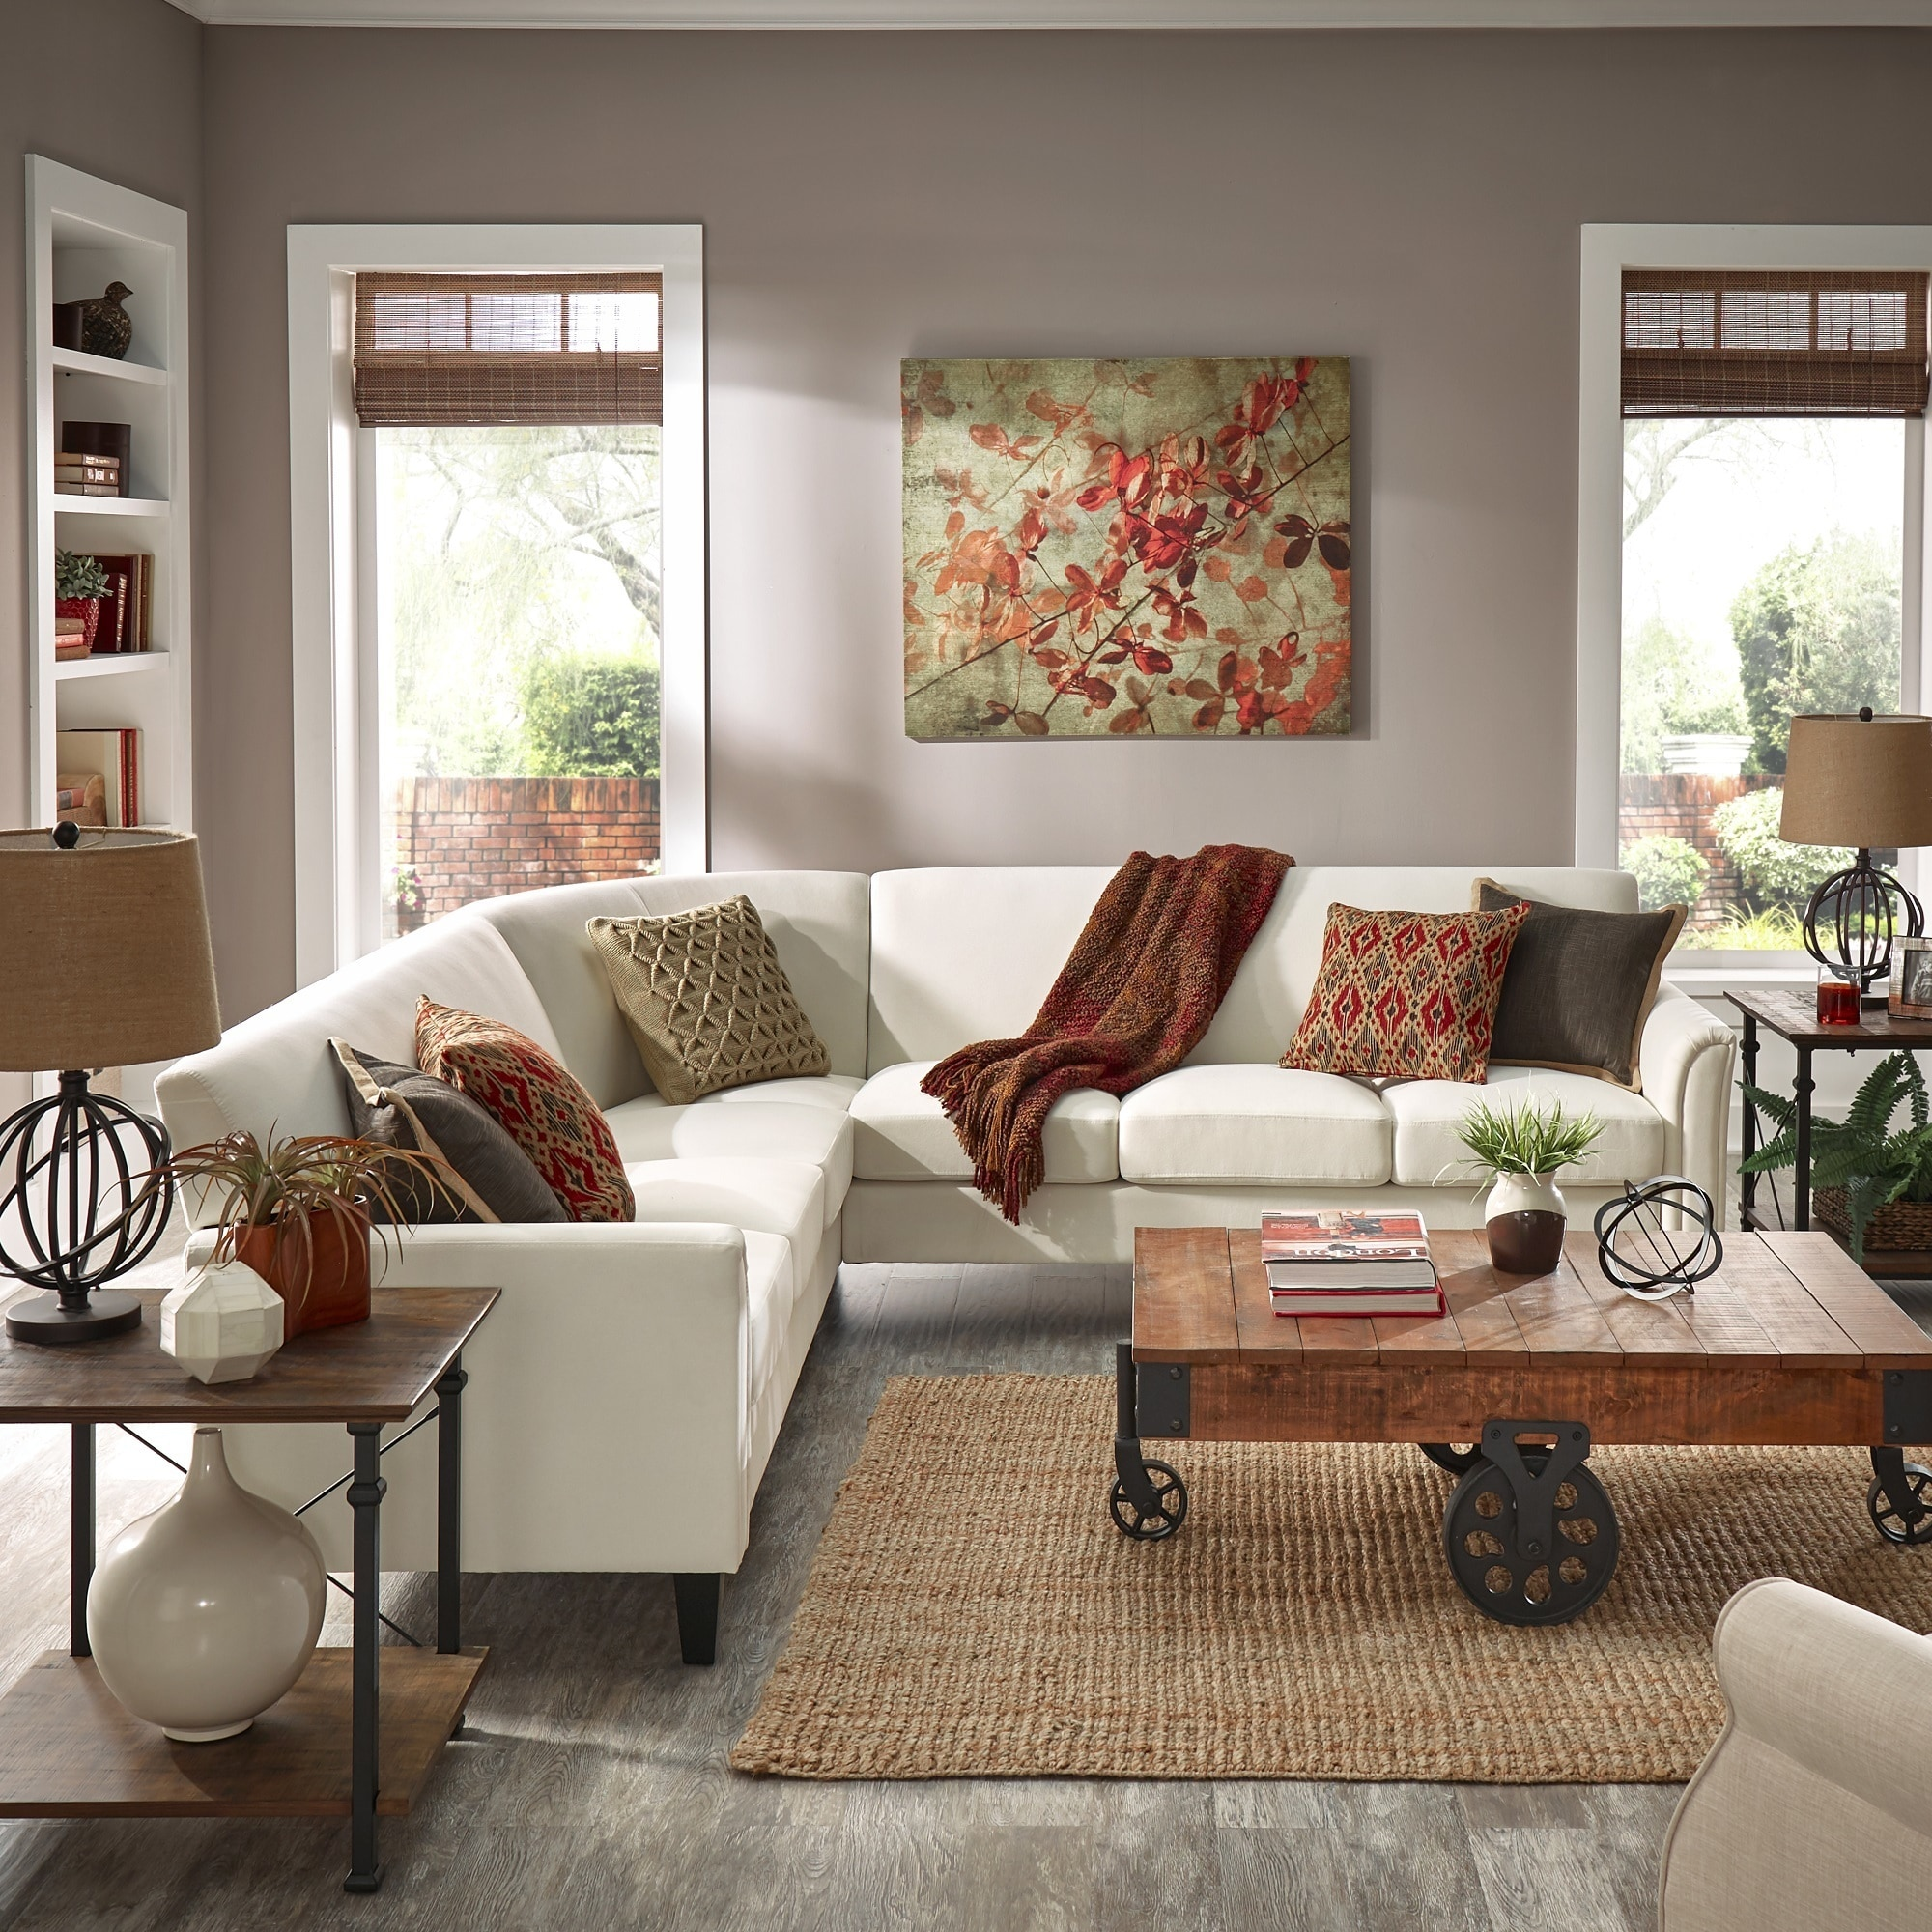 Uptown Modern Ivory White Upholstered L-Shaped Sectional by iNSPIRE Q Classic (7-Seat Sectional)